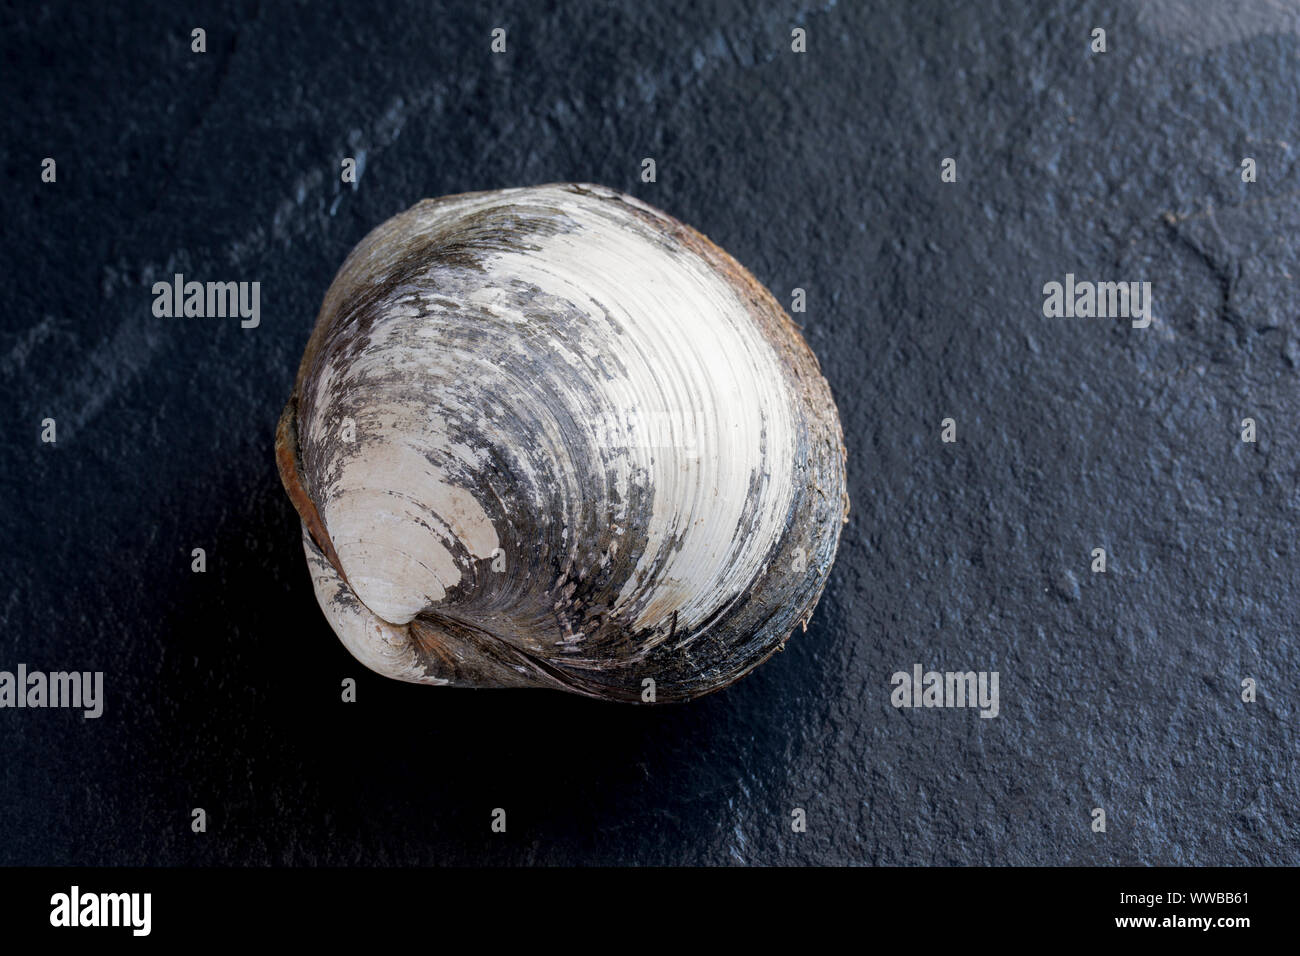 An Icelandic cyprine clam, Arctica islandica,  found in the English Channel. The Icelandic cyprine is one of the longest living organisms on Earth wit Stock Photo